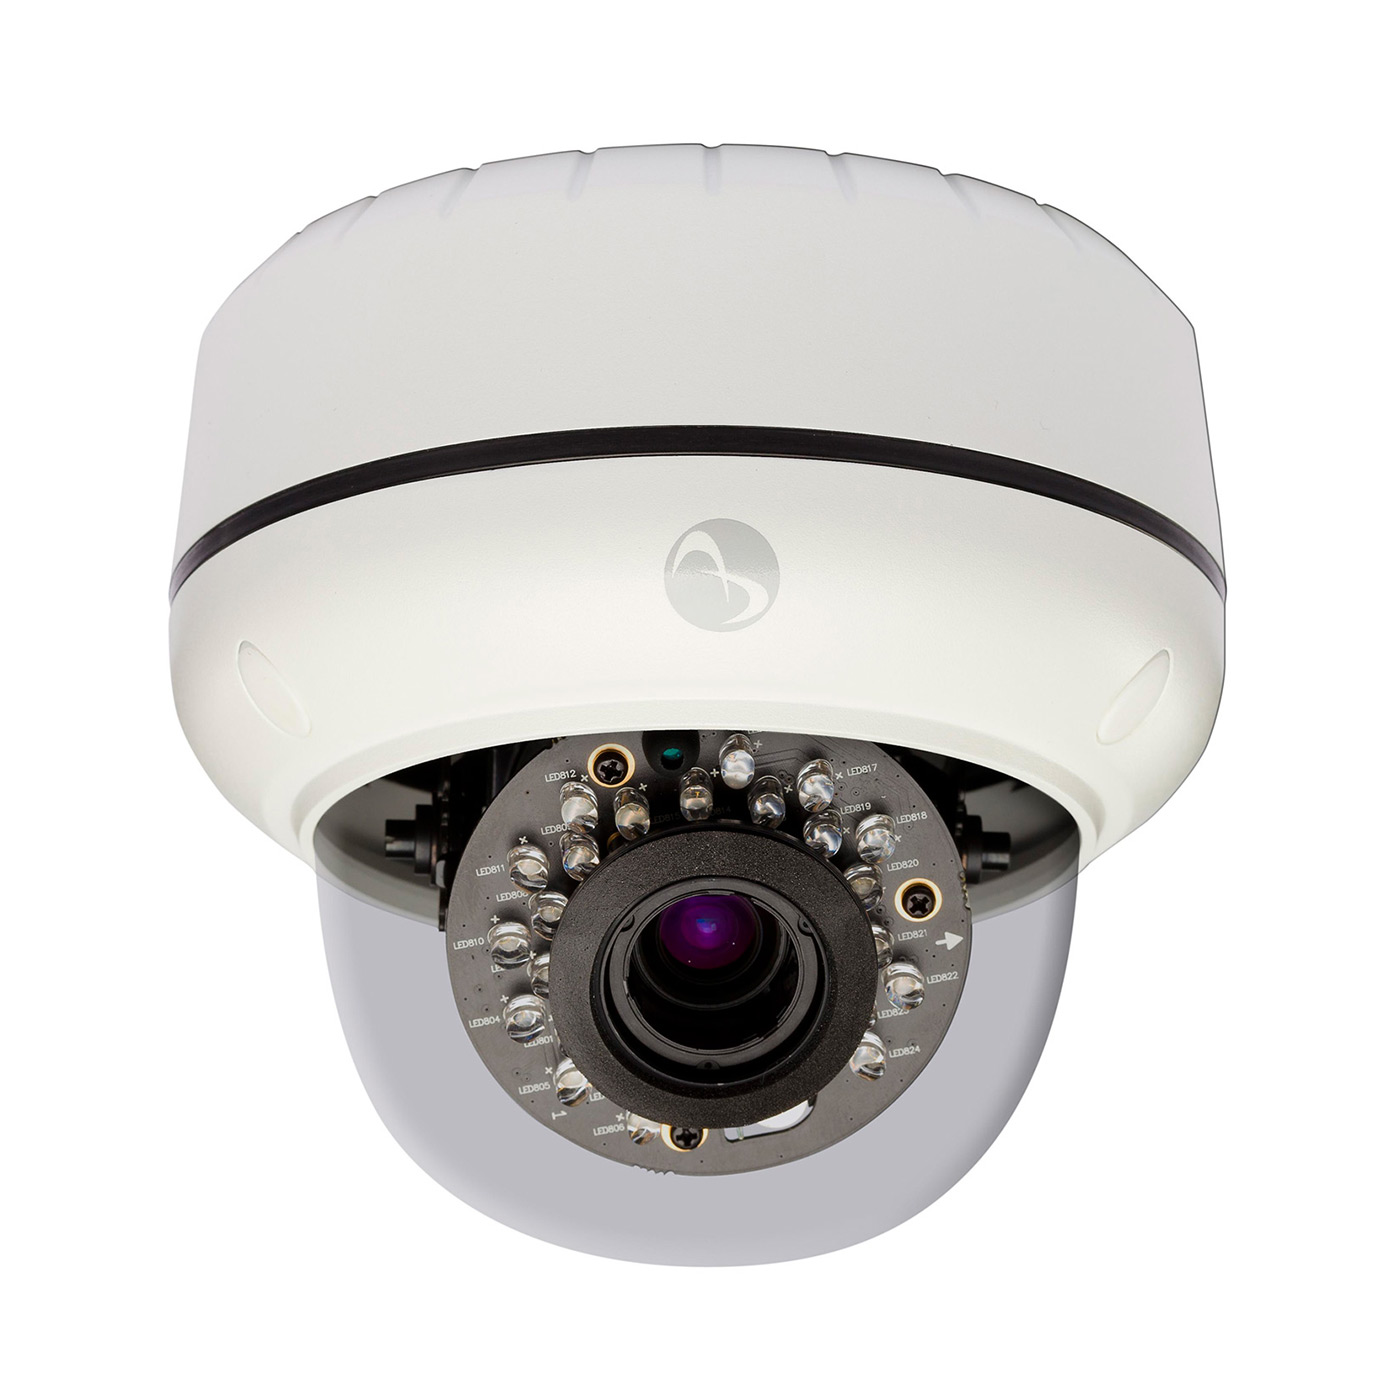 Pro 600 610 mini dome illustra cameras publicscrutiny Gallery